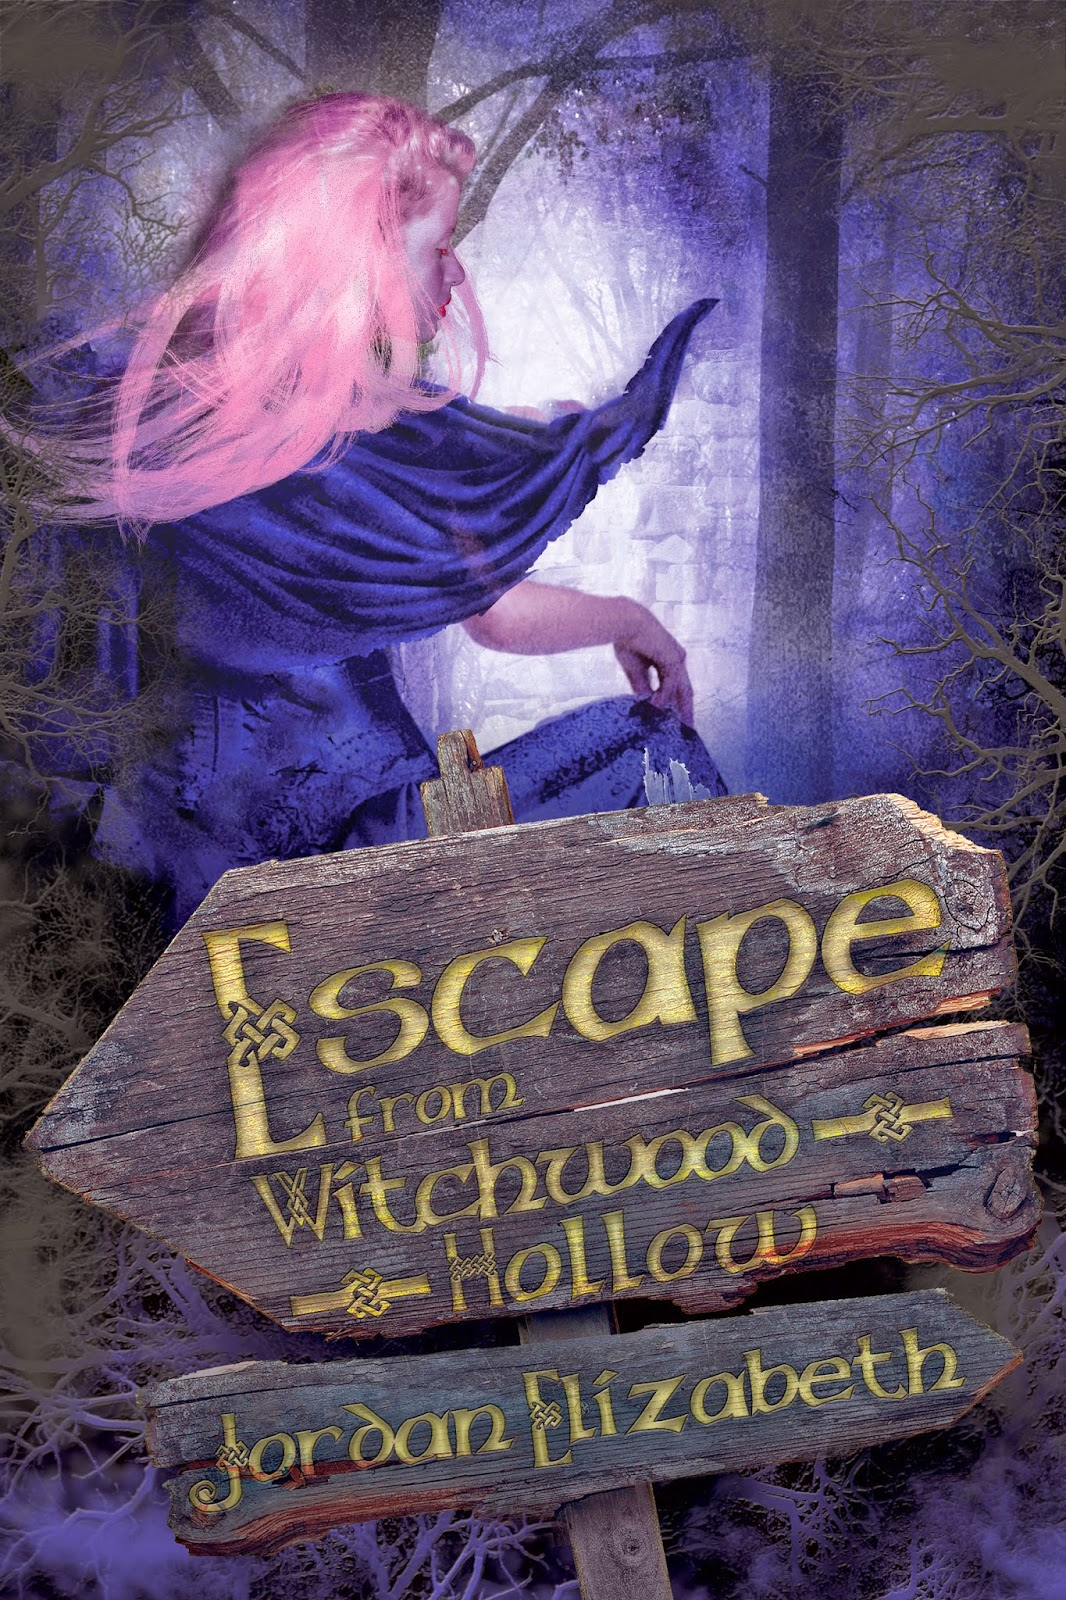 Escape from Witchwood Hollow by Jordan Elizabeth